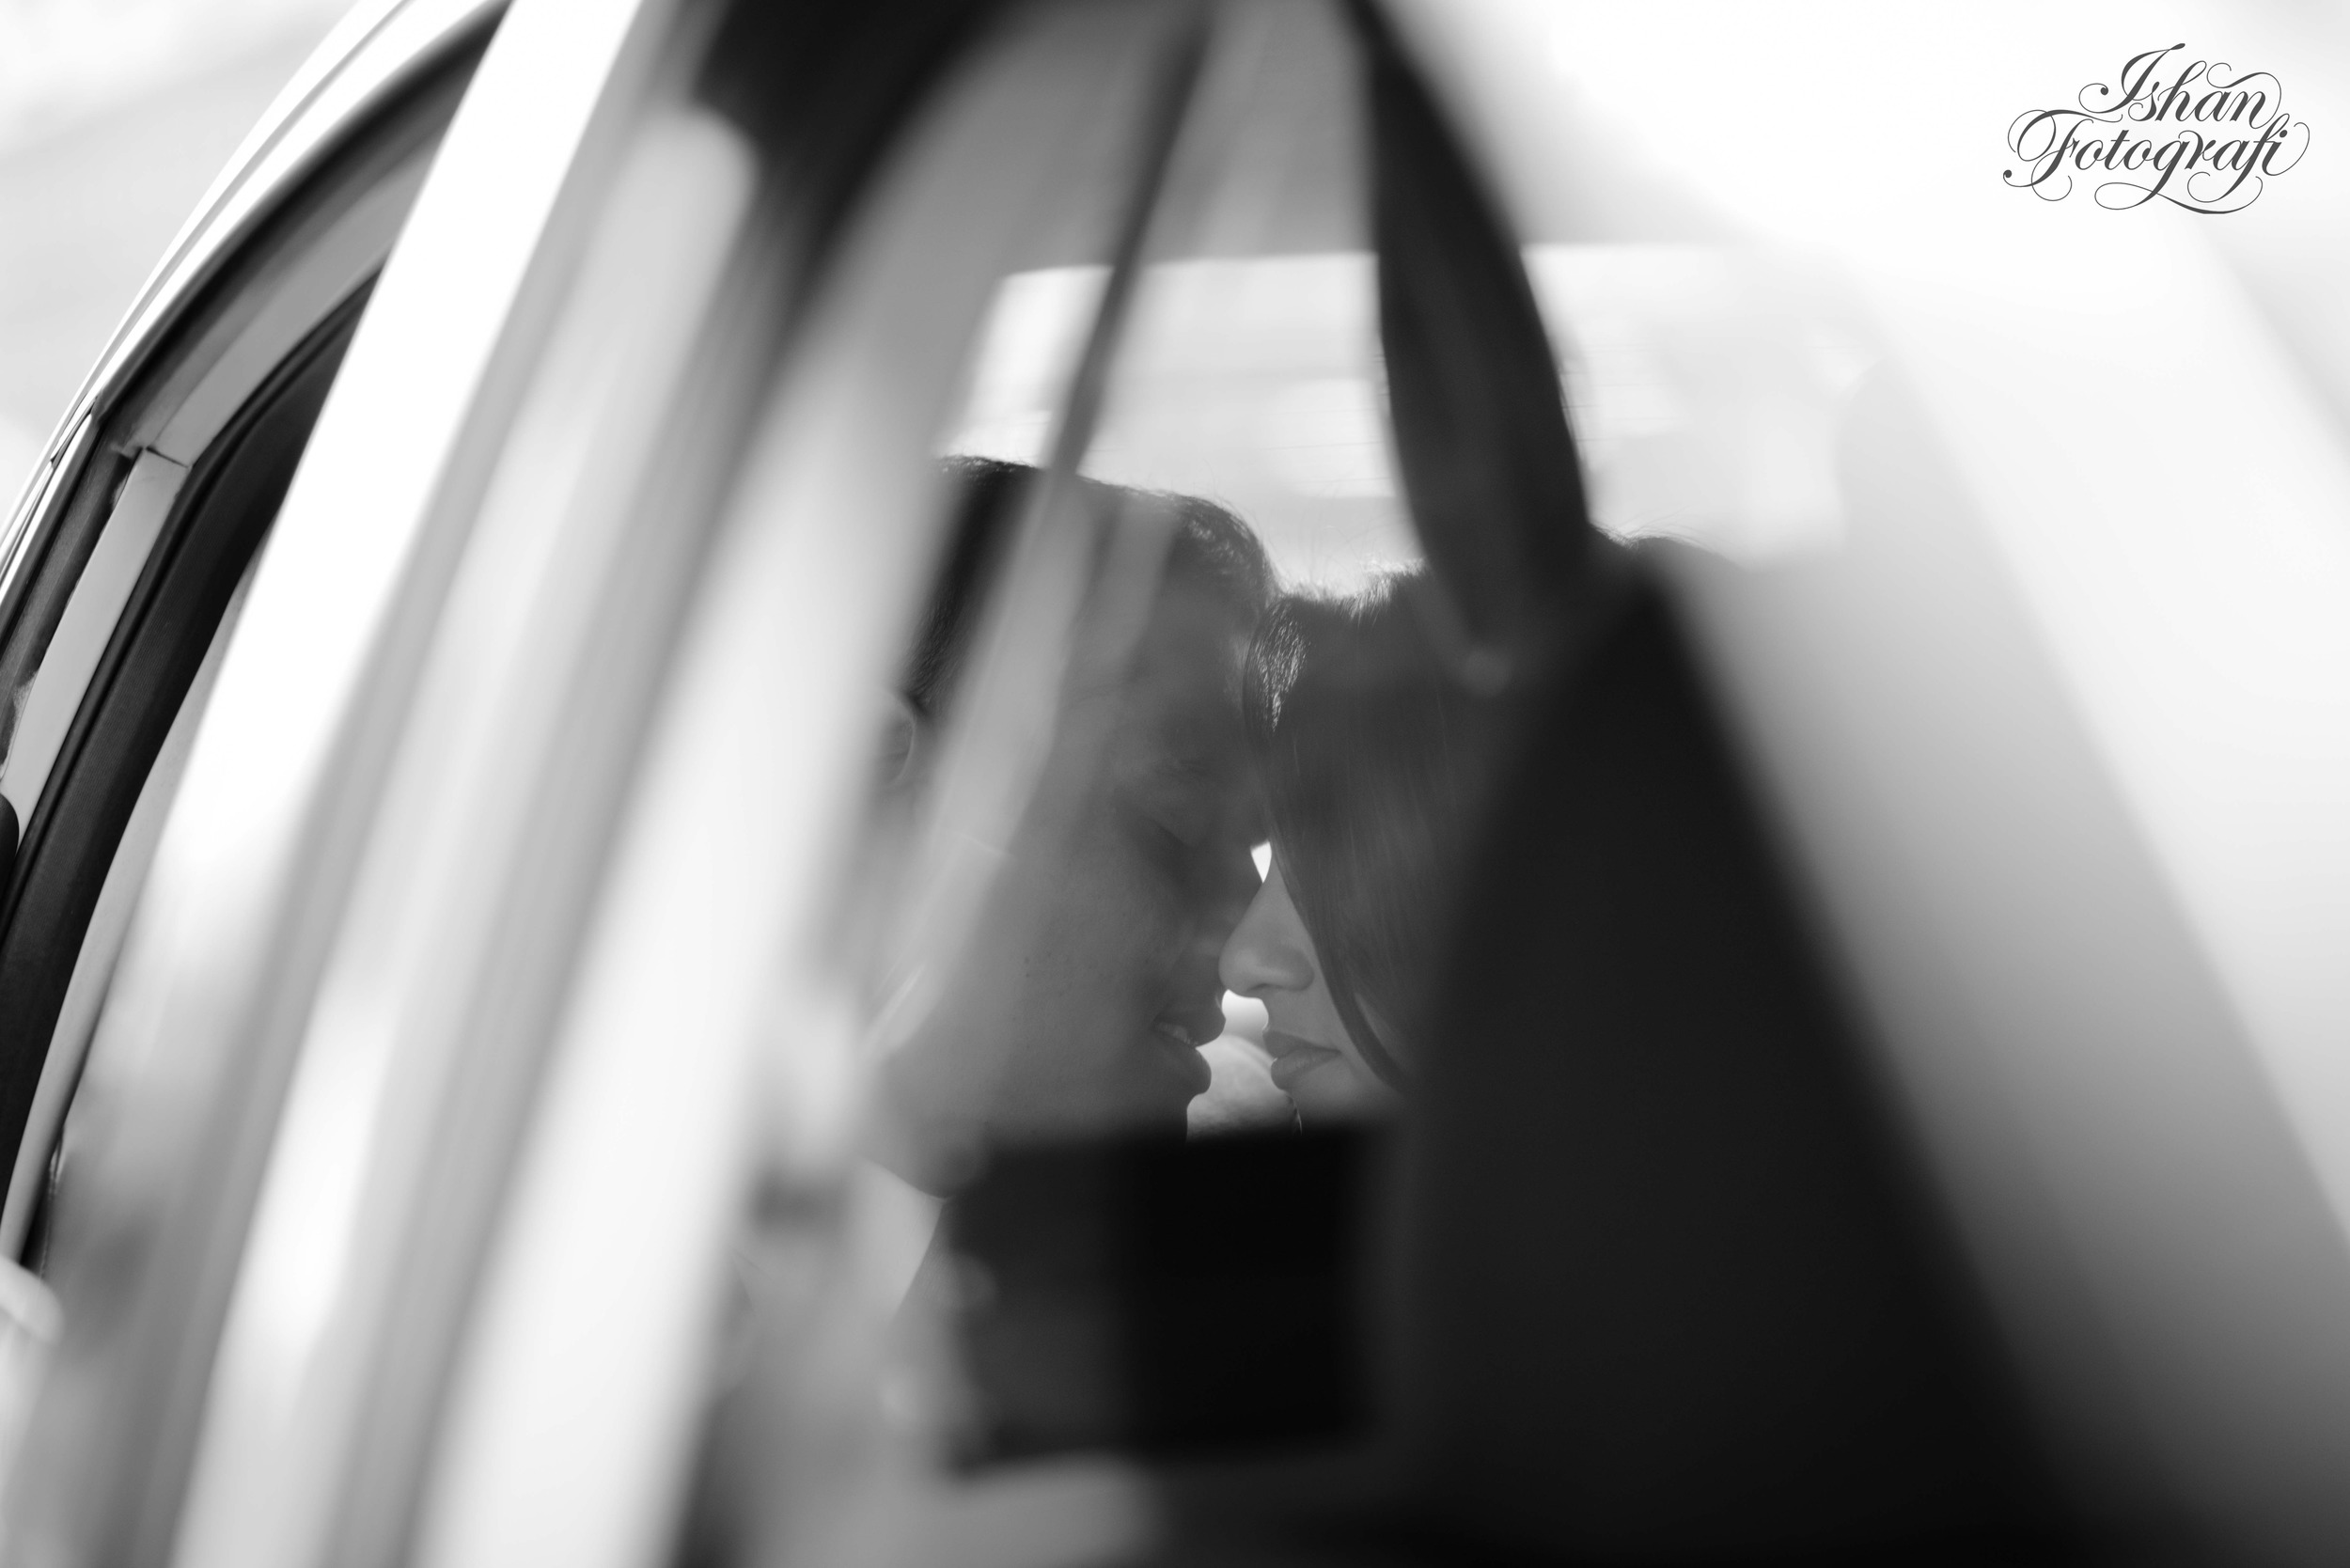 intimate-moment-in-a-ny-yellow-cab-ishanfotografi